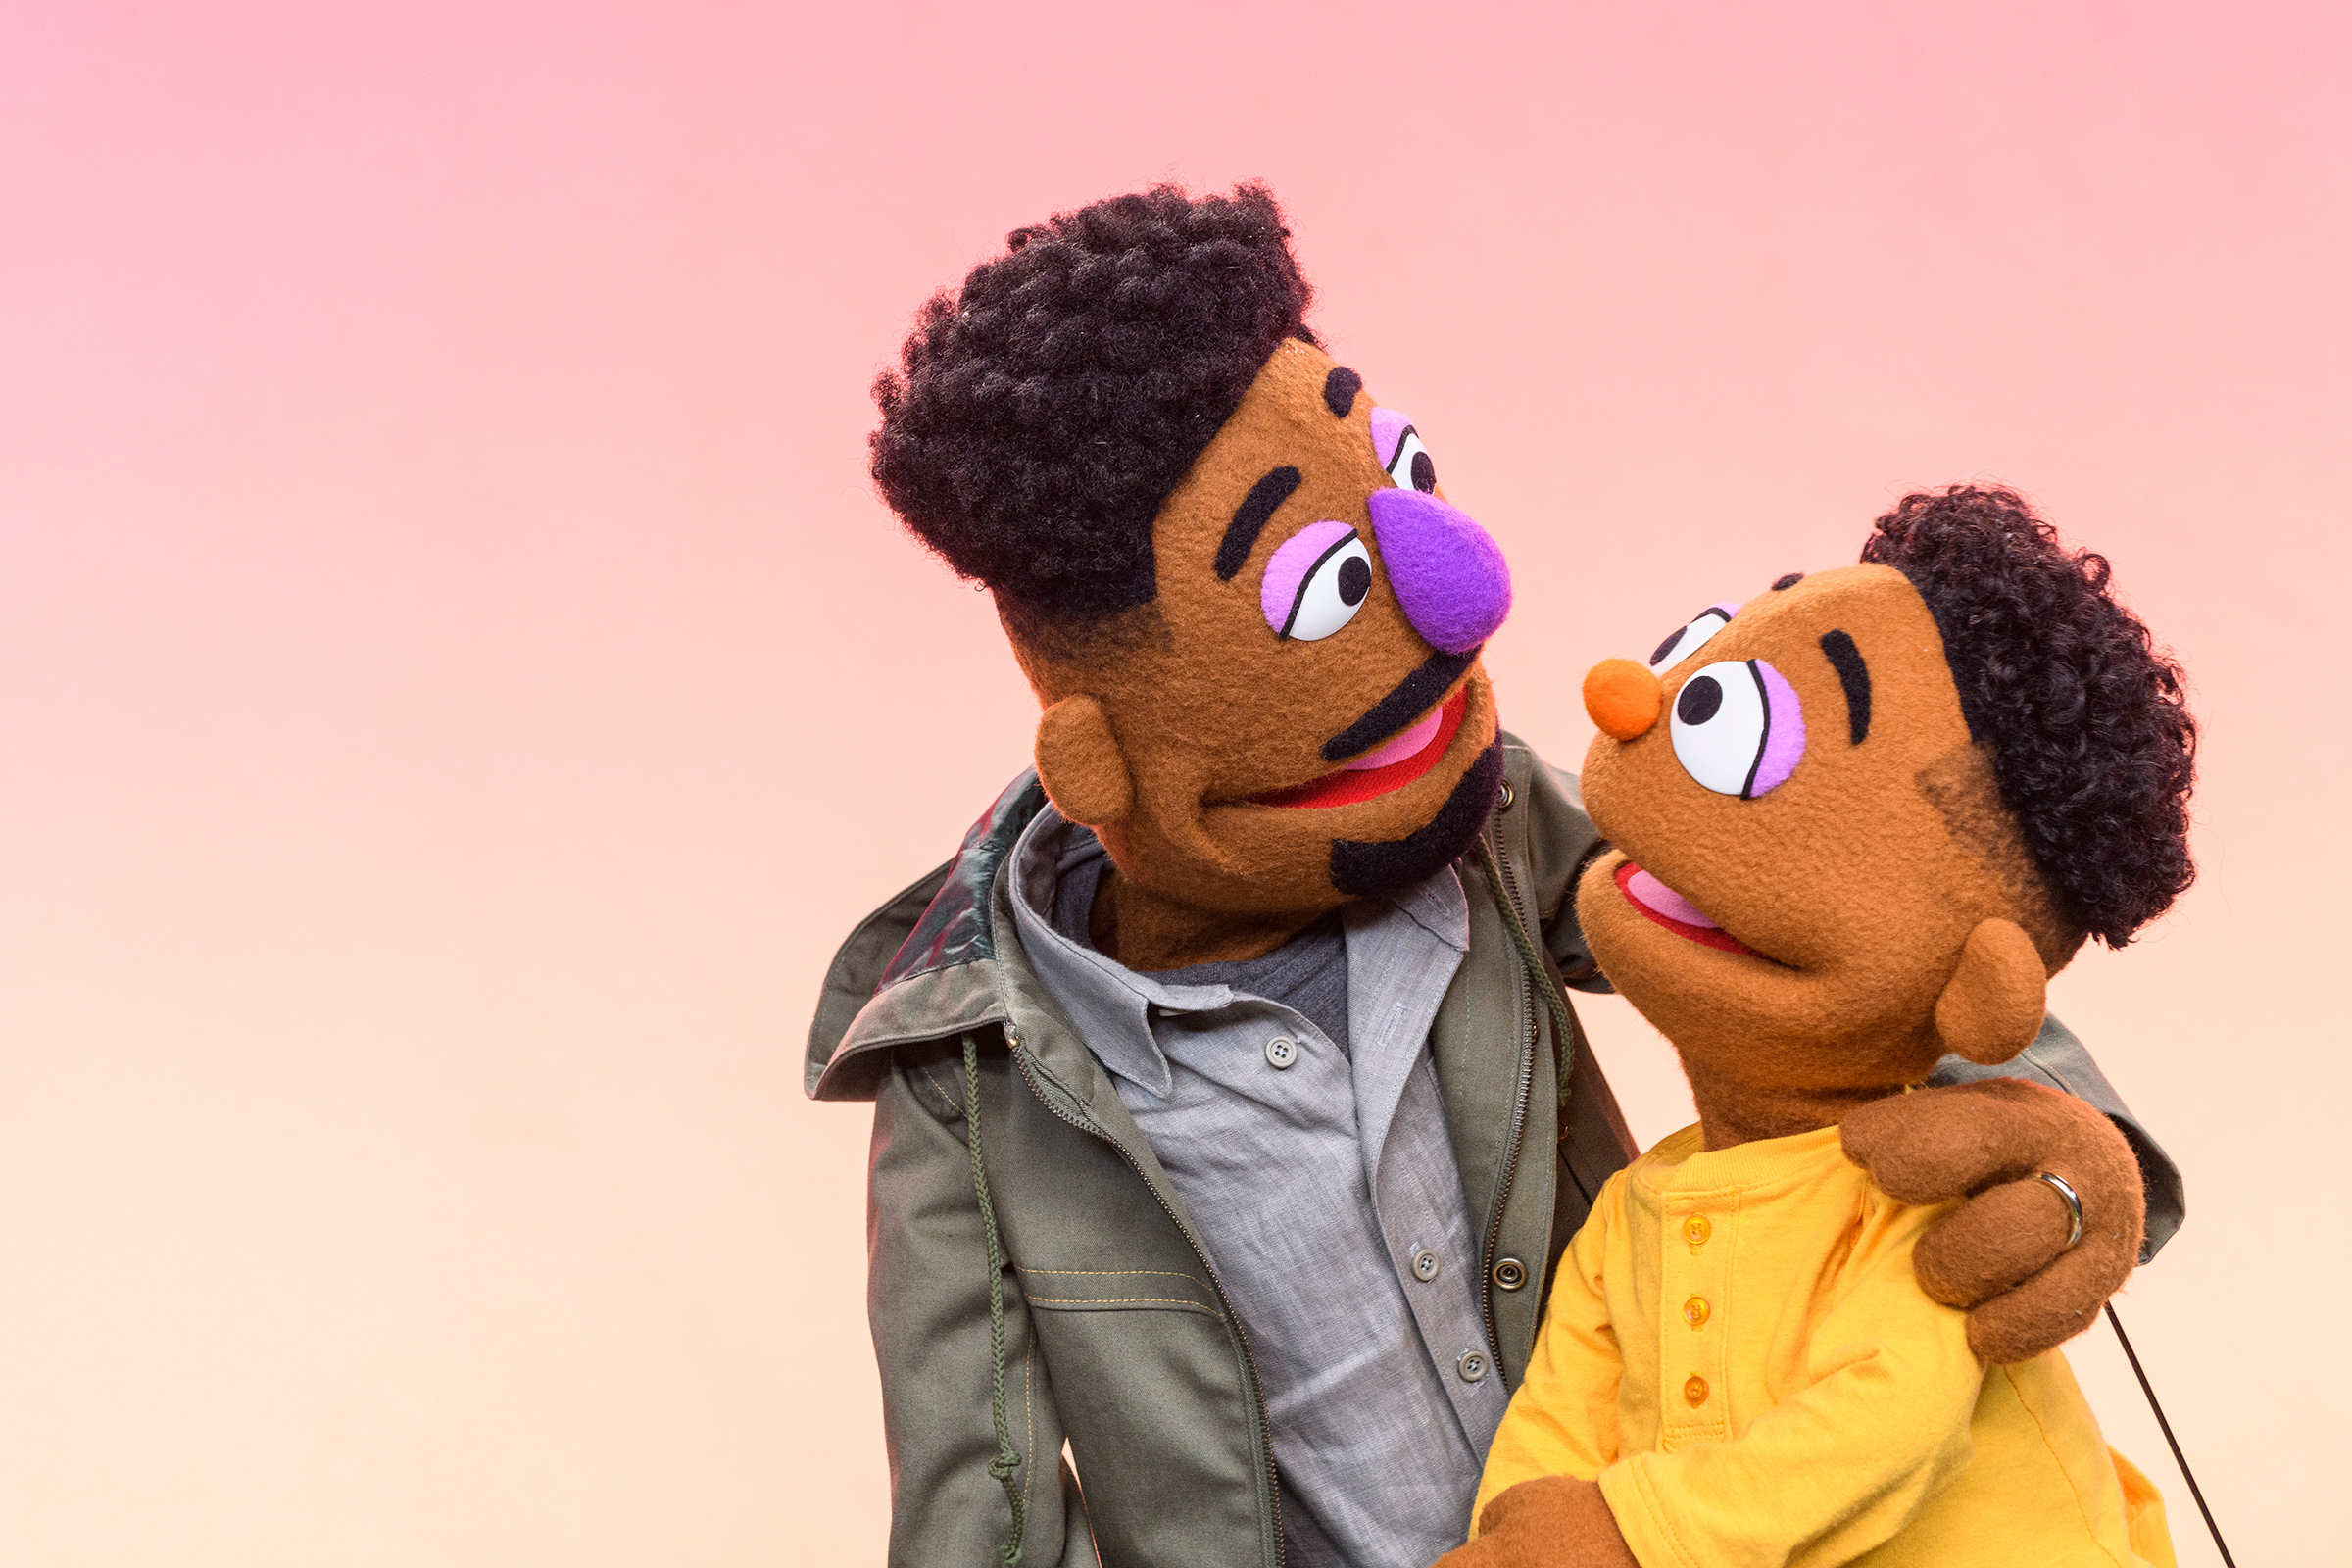 How Kids Perceive Racism in the U.S., According to a New Study by Sesame Workshop